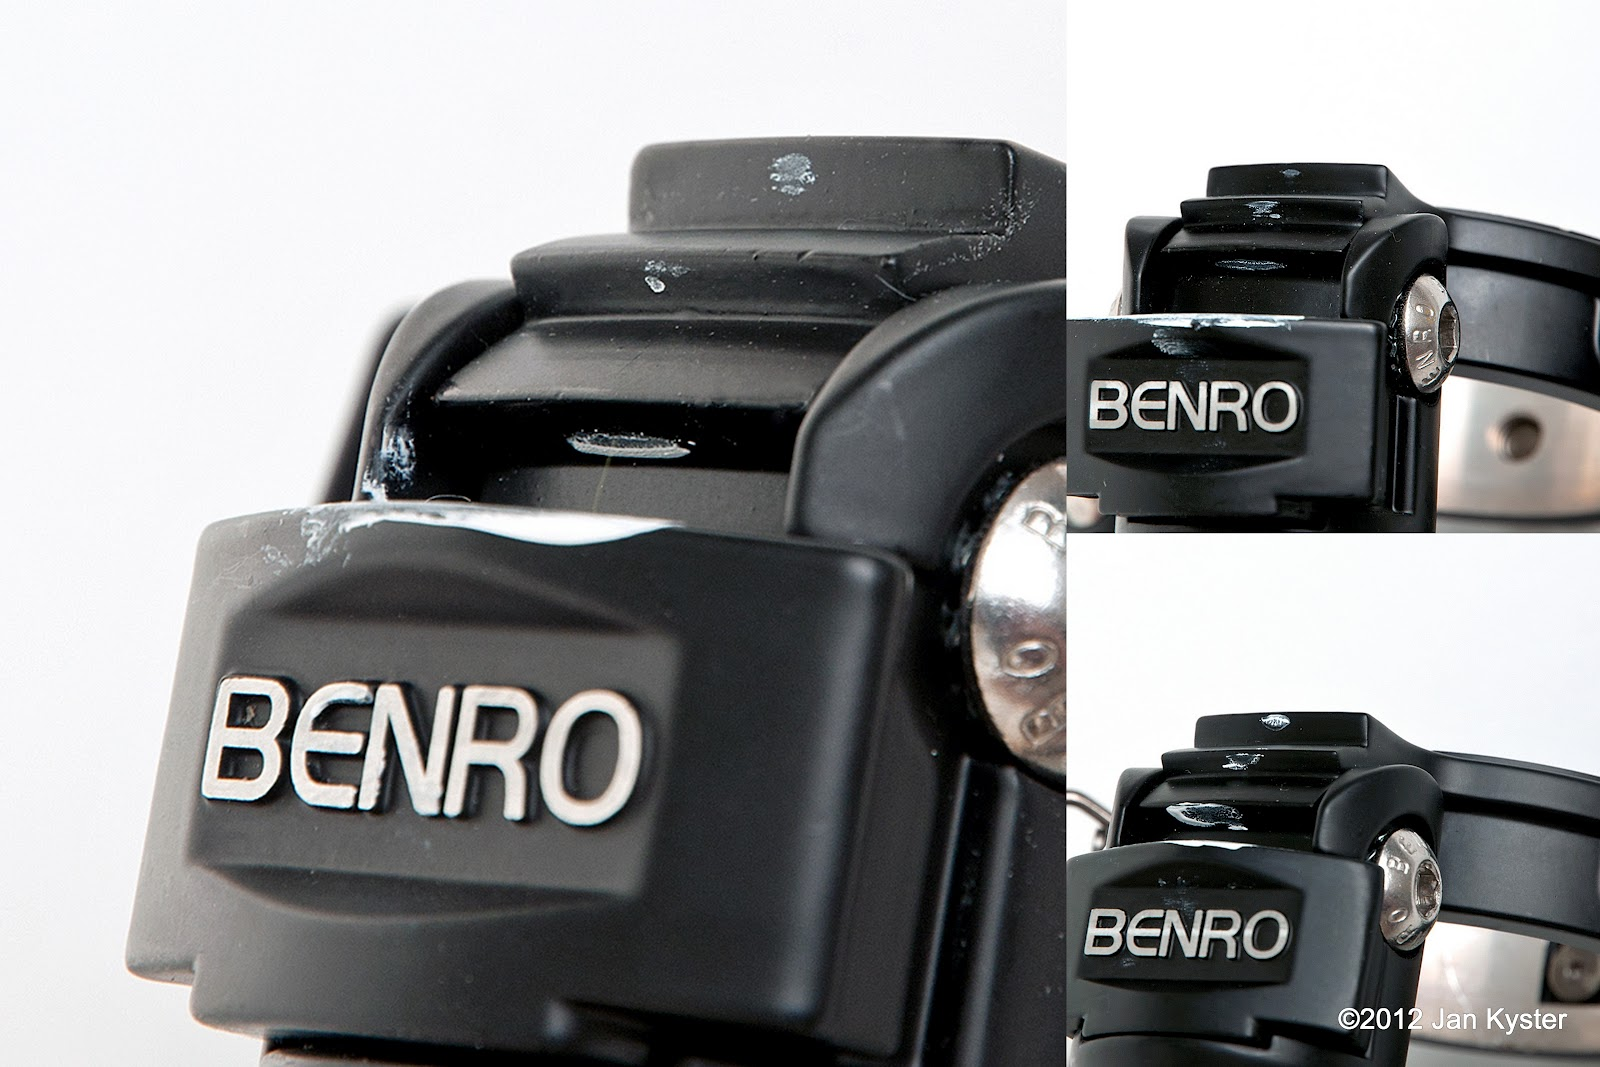 Benro C3770T CF Tripod - all leg angle locks contact detail